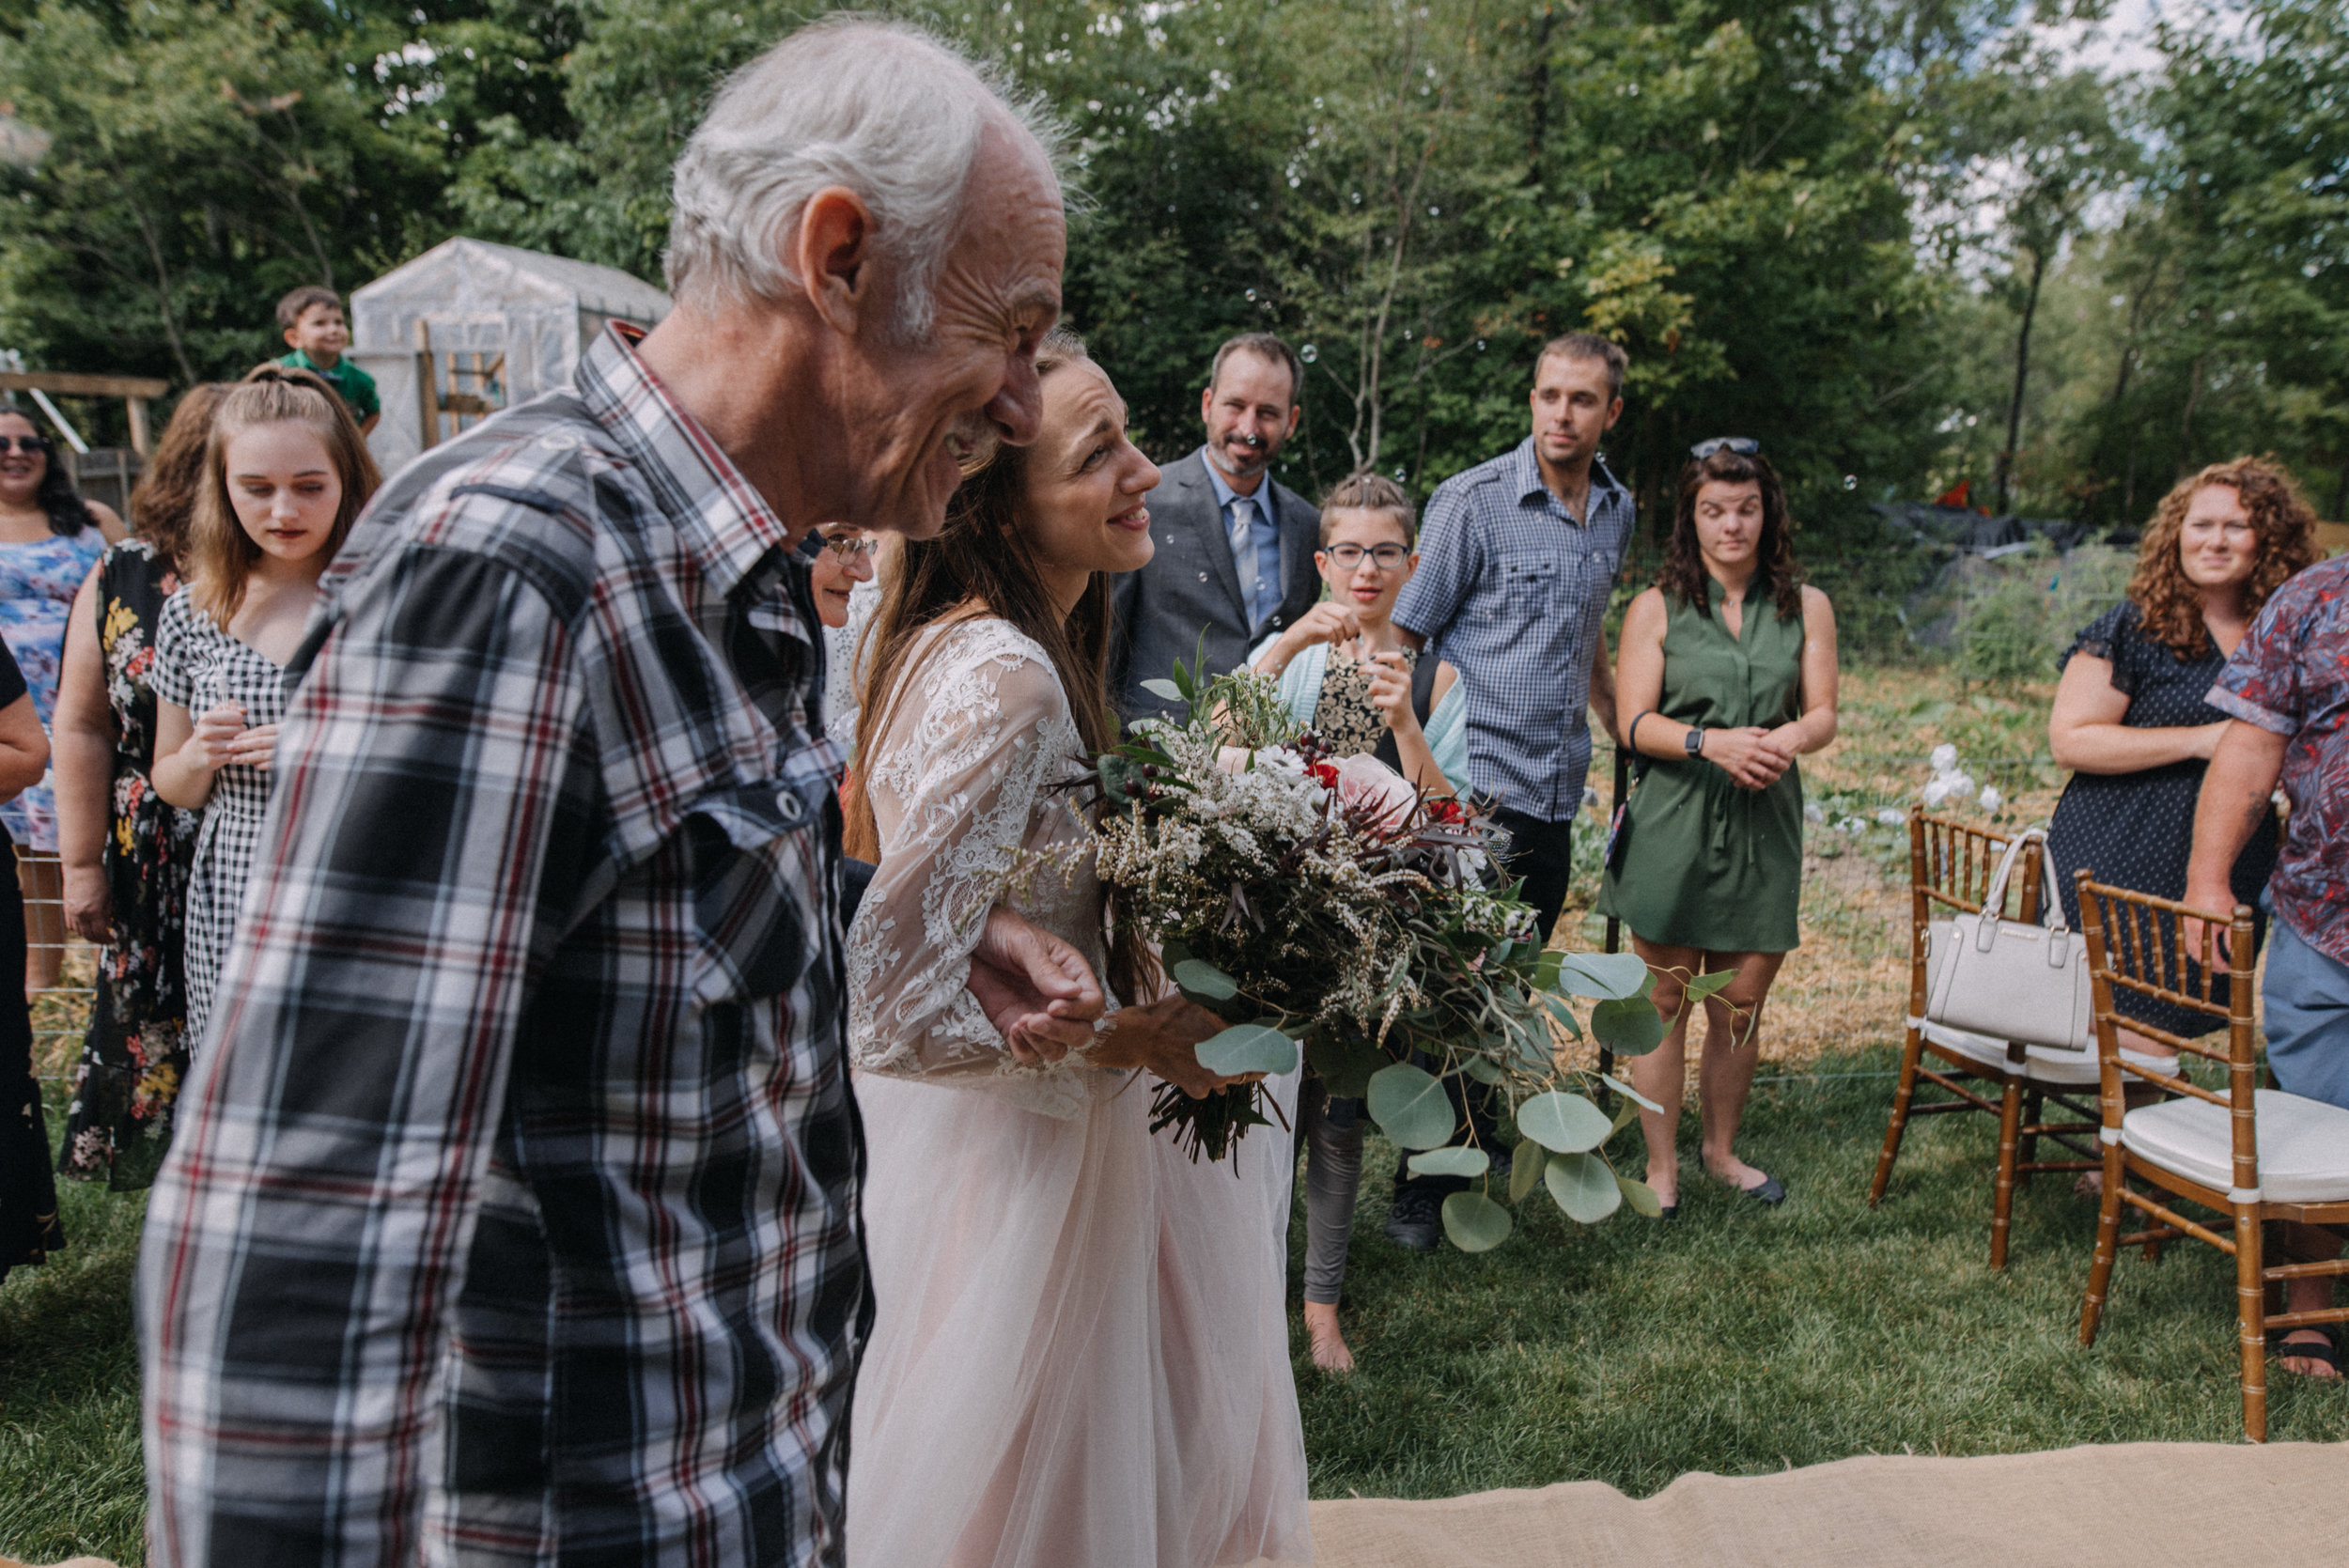 ottawa_wedding_photographer_gatineau_photographe_mariage_documentary_candid_photojournalist_natural_raw_boho_wedding_backyard (14).JPG